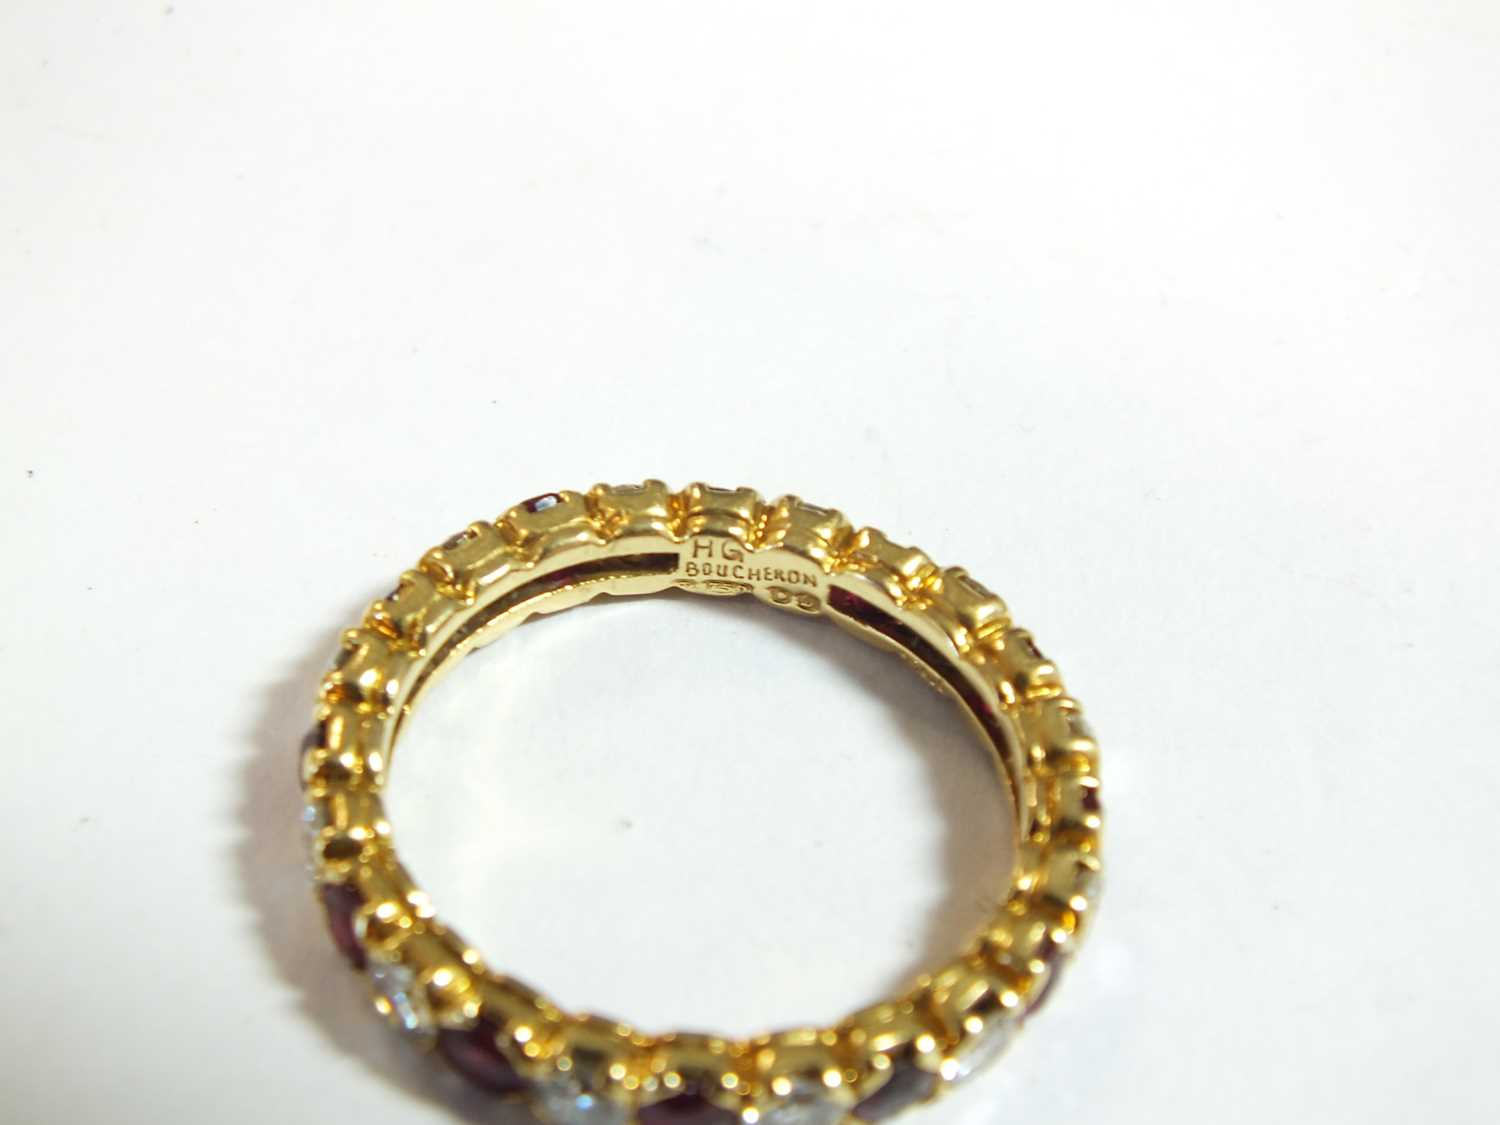 An 18ct gold ruby and diamond full eternity ring by Boucheron - Image 3 of 8